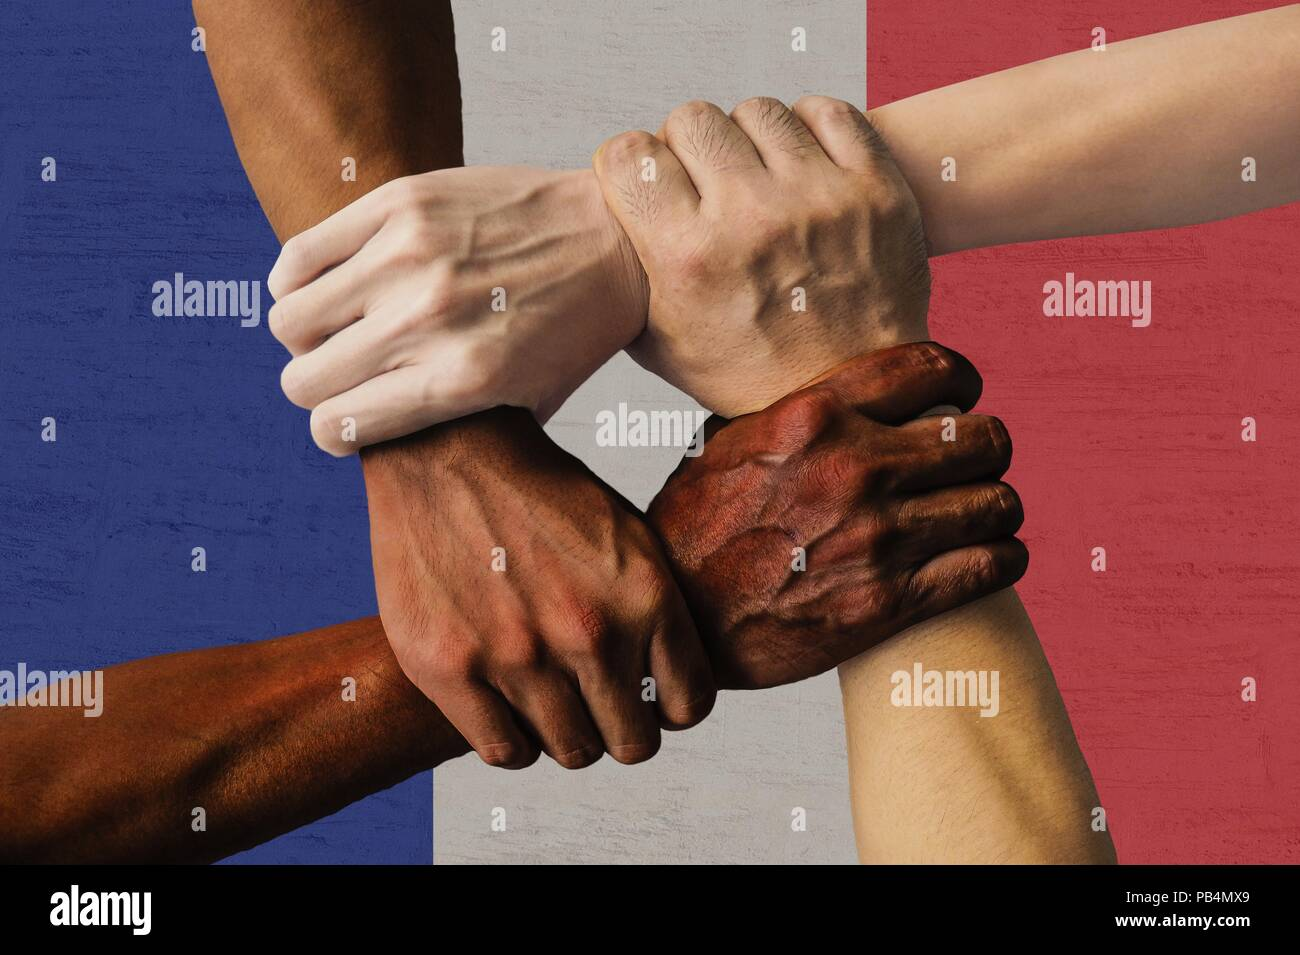 France flag multicultural group of young people integration diversity isolated. - Stock Image